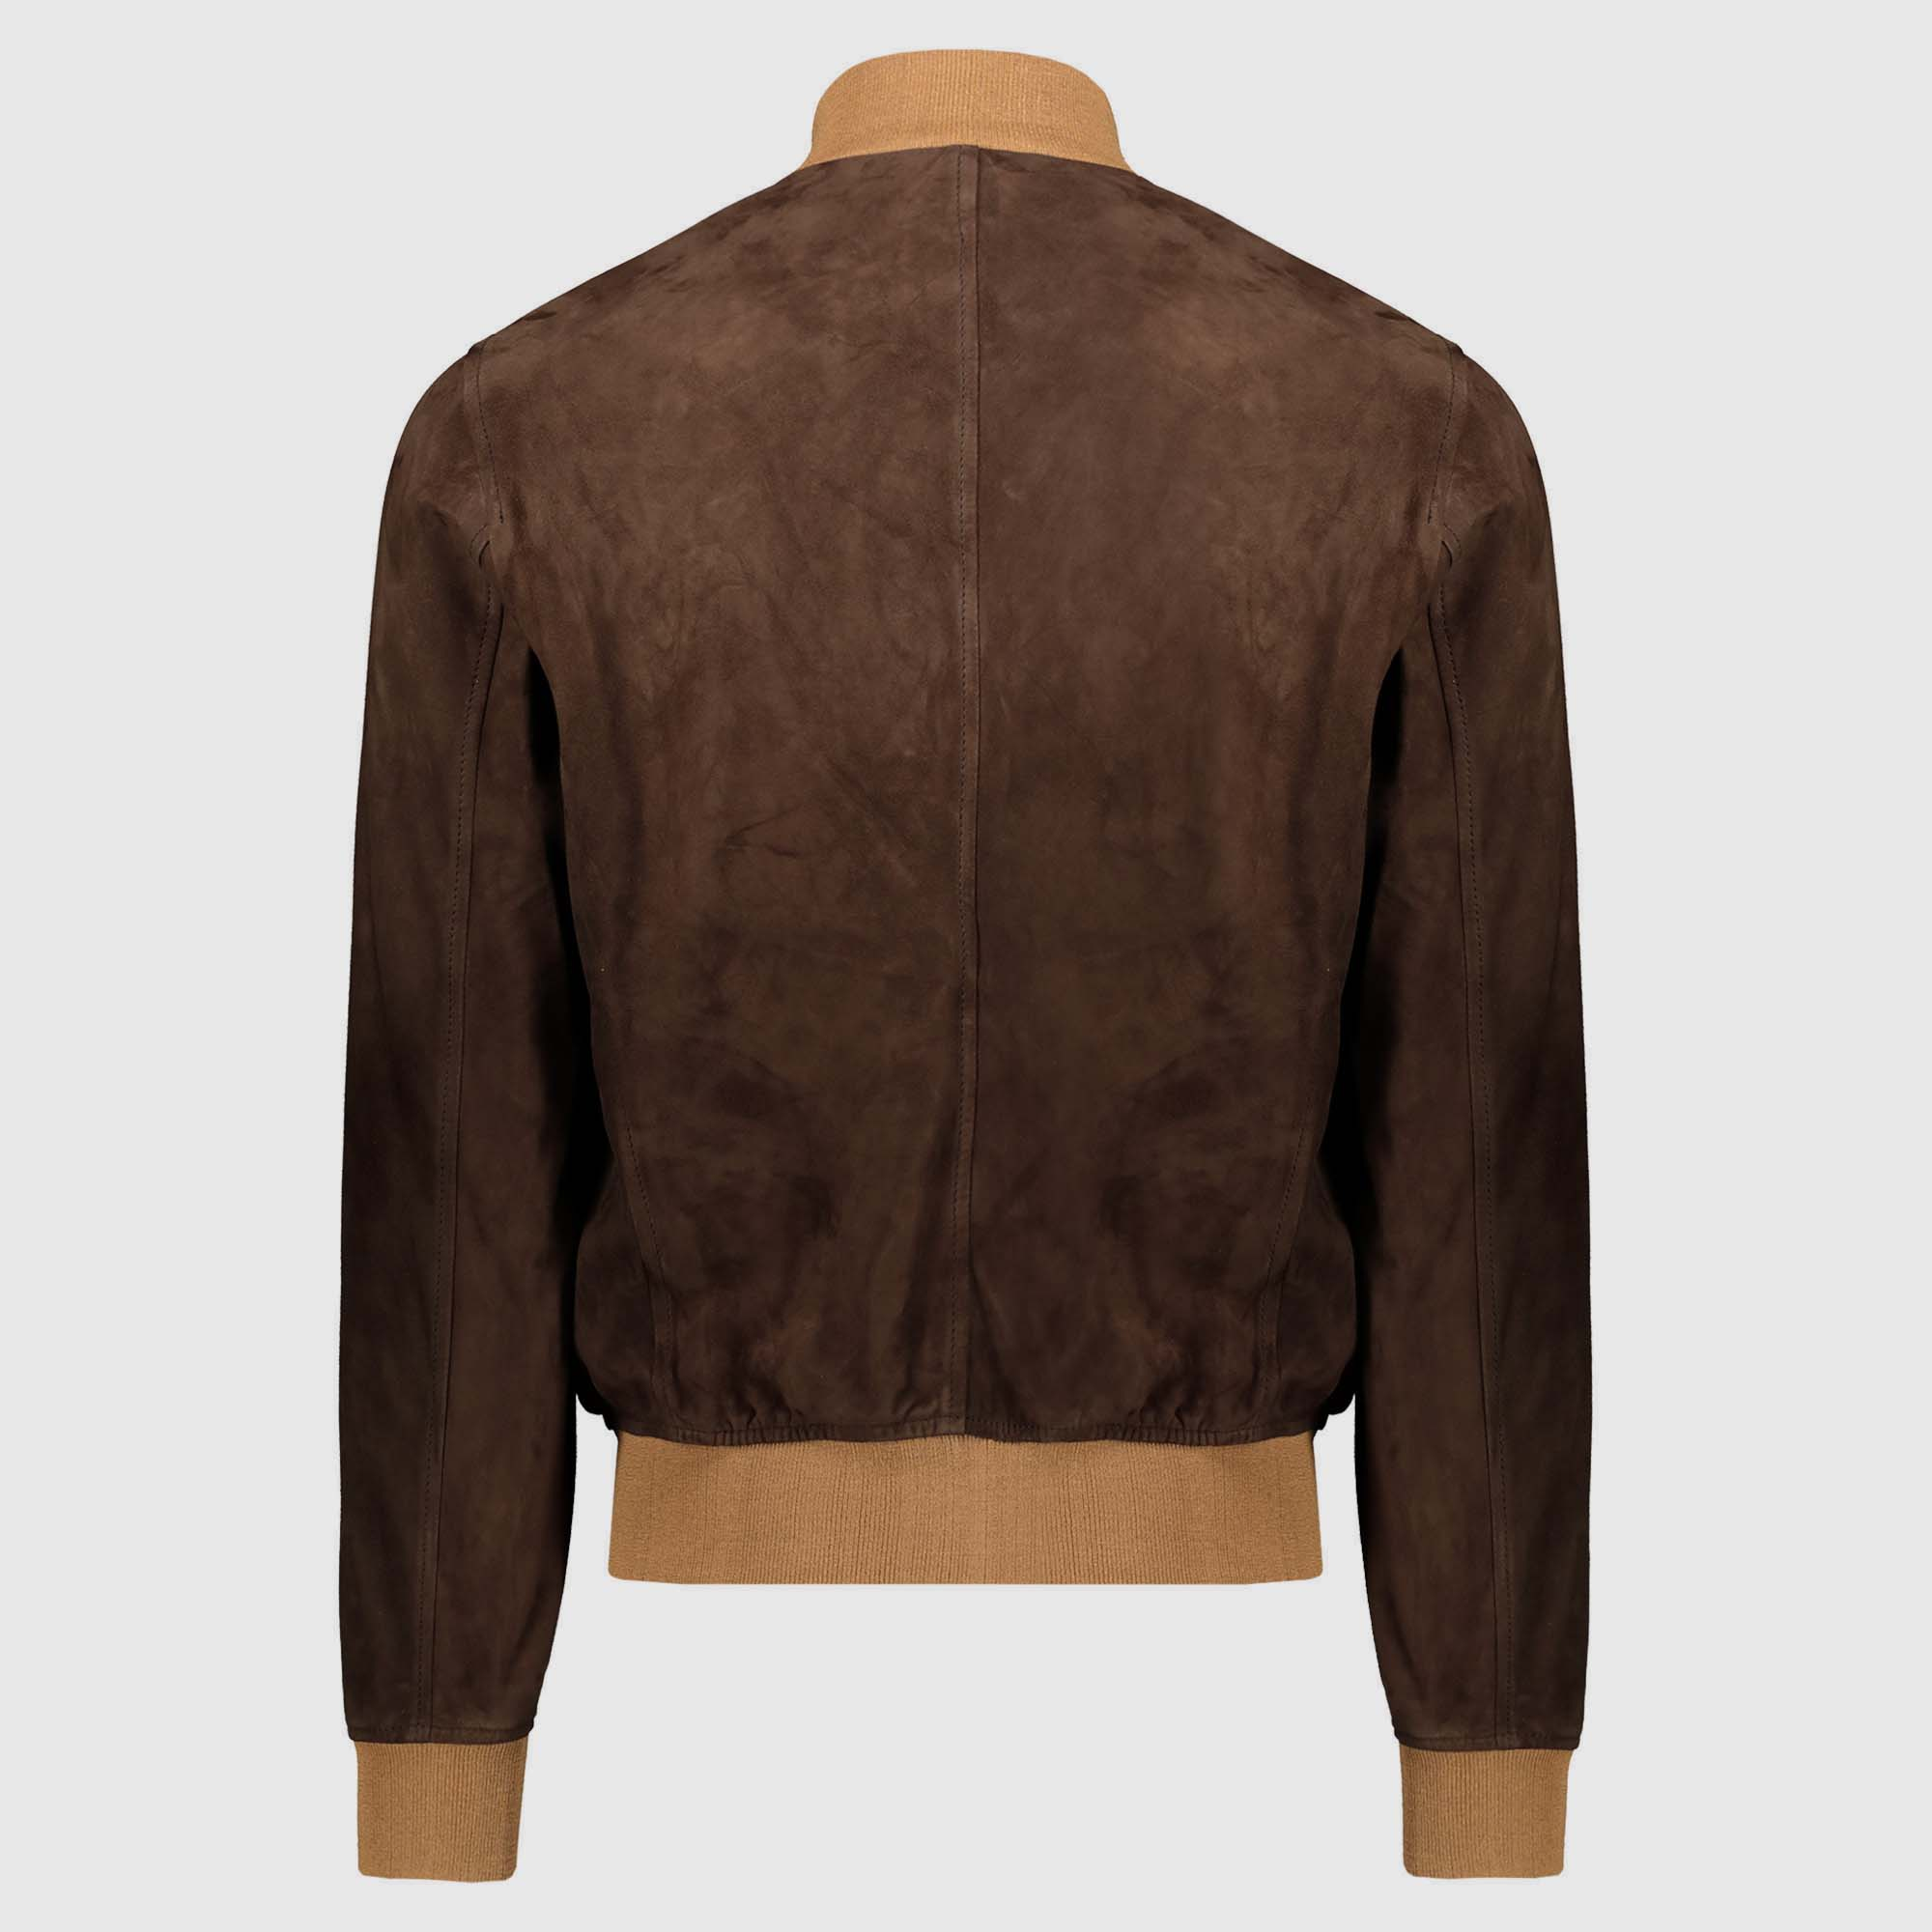 Brown suede & Woodsmoke details Bomber Jacket A1 Cary